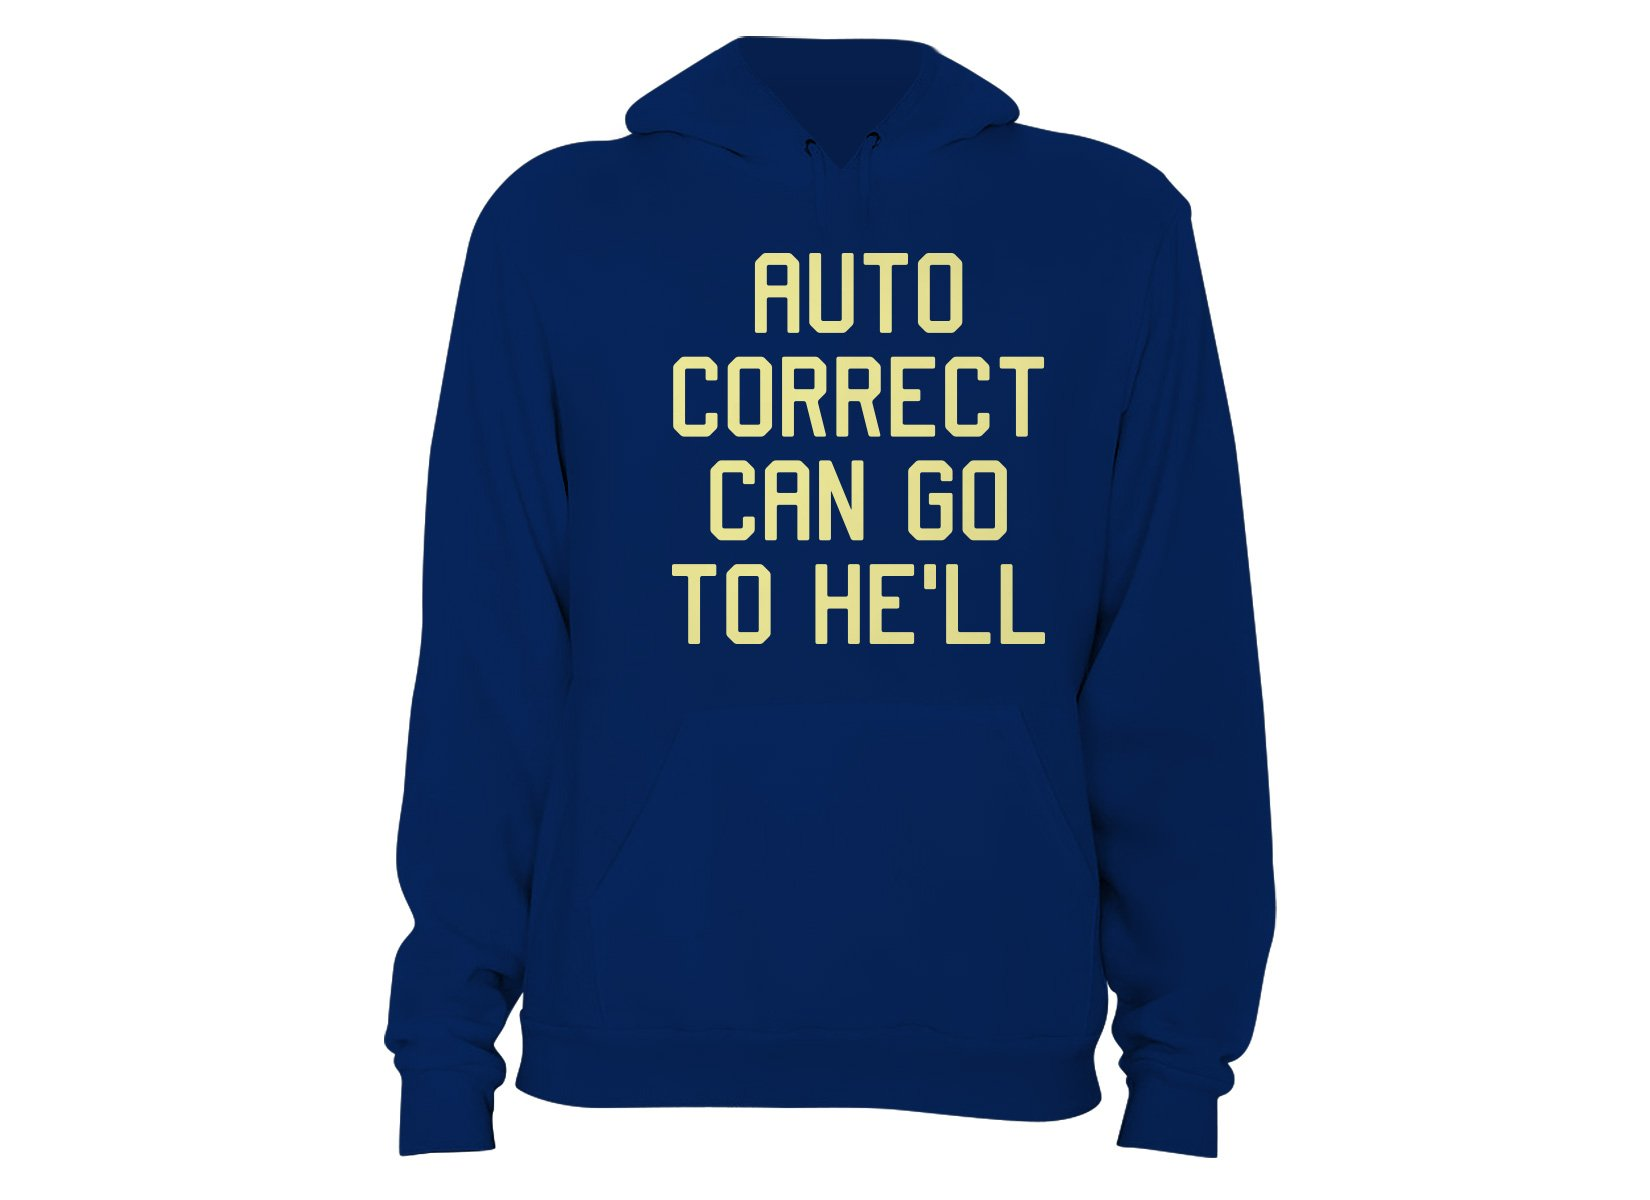 Auto Correct Can Go To He'll on Hoodie